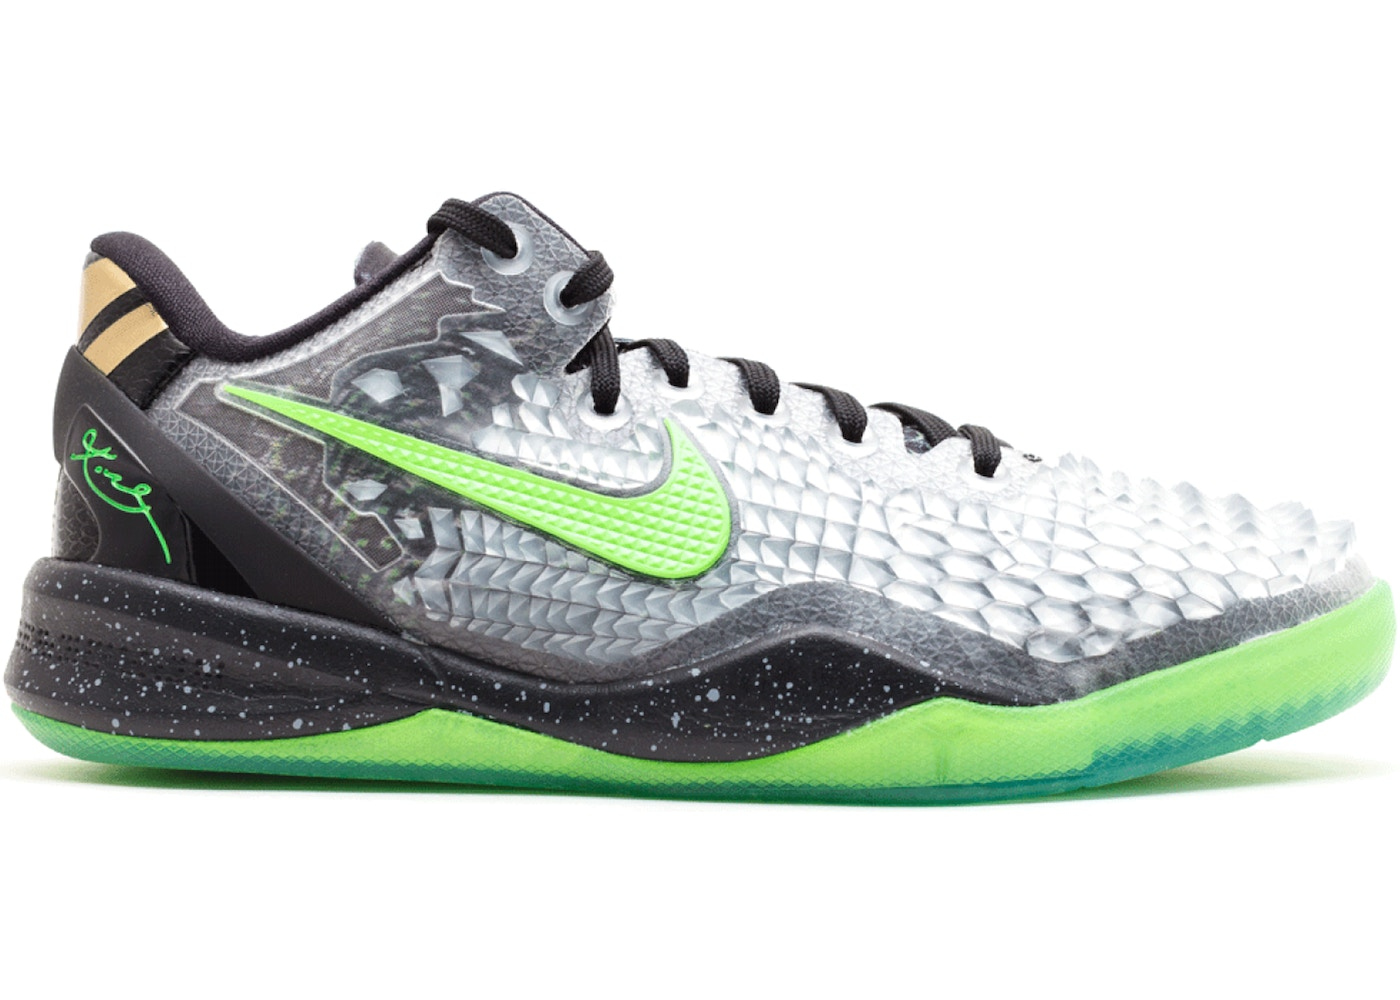 quality design fed21 64feb Buy Nike Kobe 8 Shoes   Deadstock Sneakers